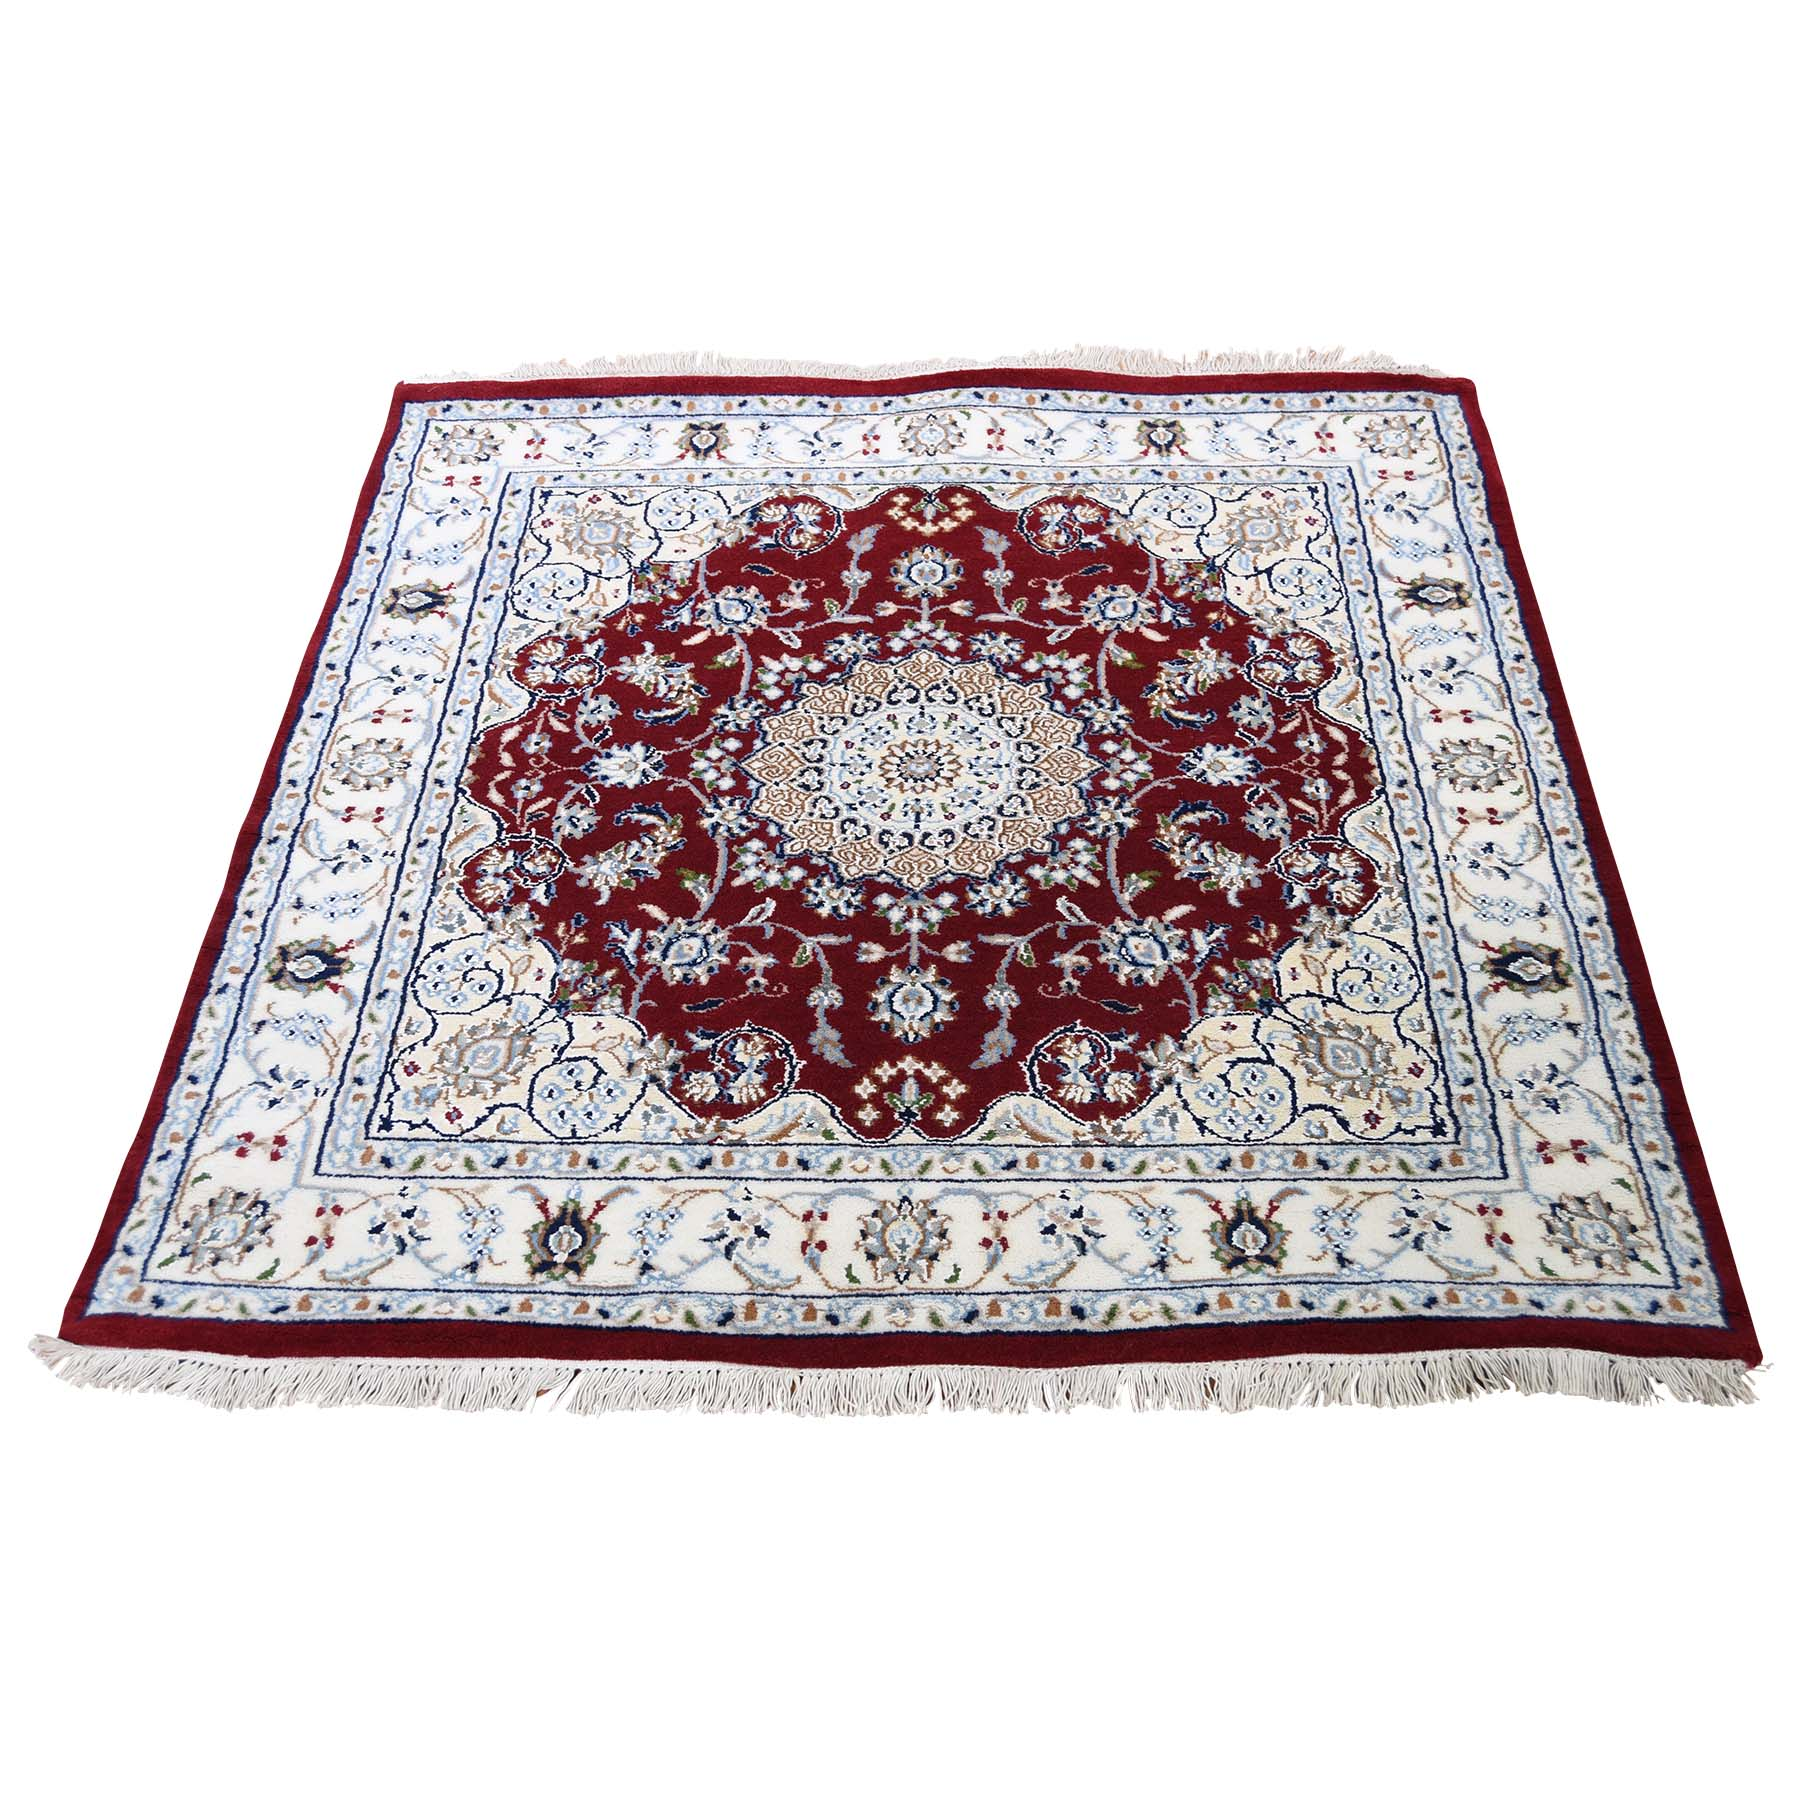 "3'10""X3'10"" Wool And Silk 250 Kpsi Red Square Nain Hand-Knotted Oriental Rug moadcc86"